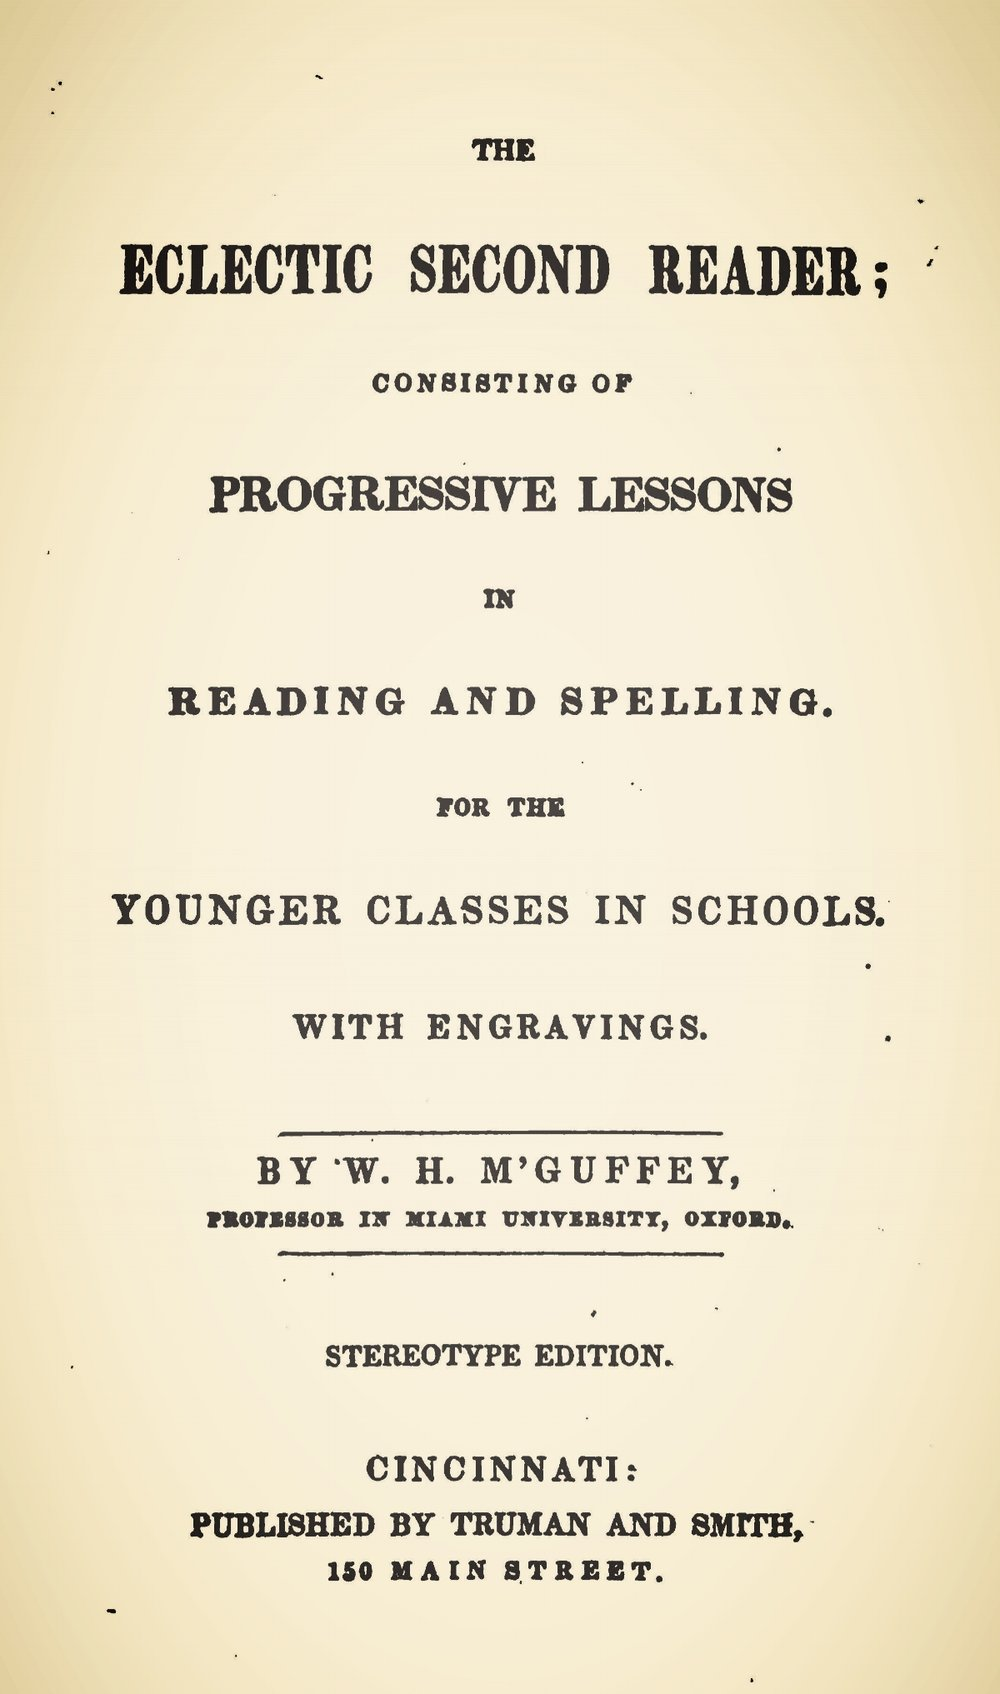 McGuffey, William, The Eclectic Second Reader Title Page.jpg